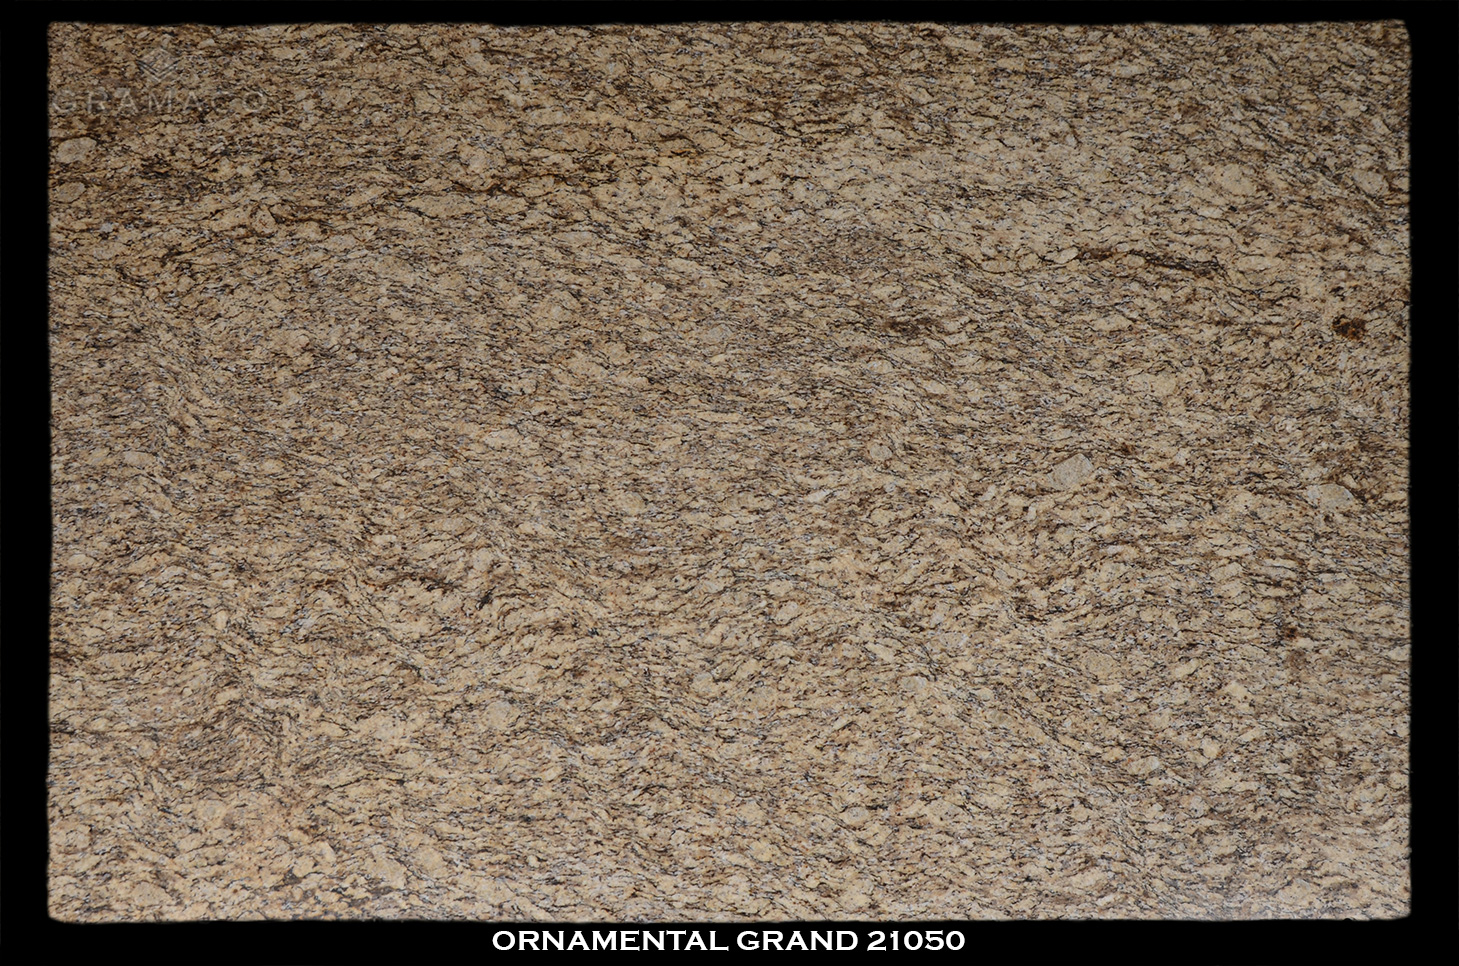 ORNAMENTAL-GRAND-21050-slab